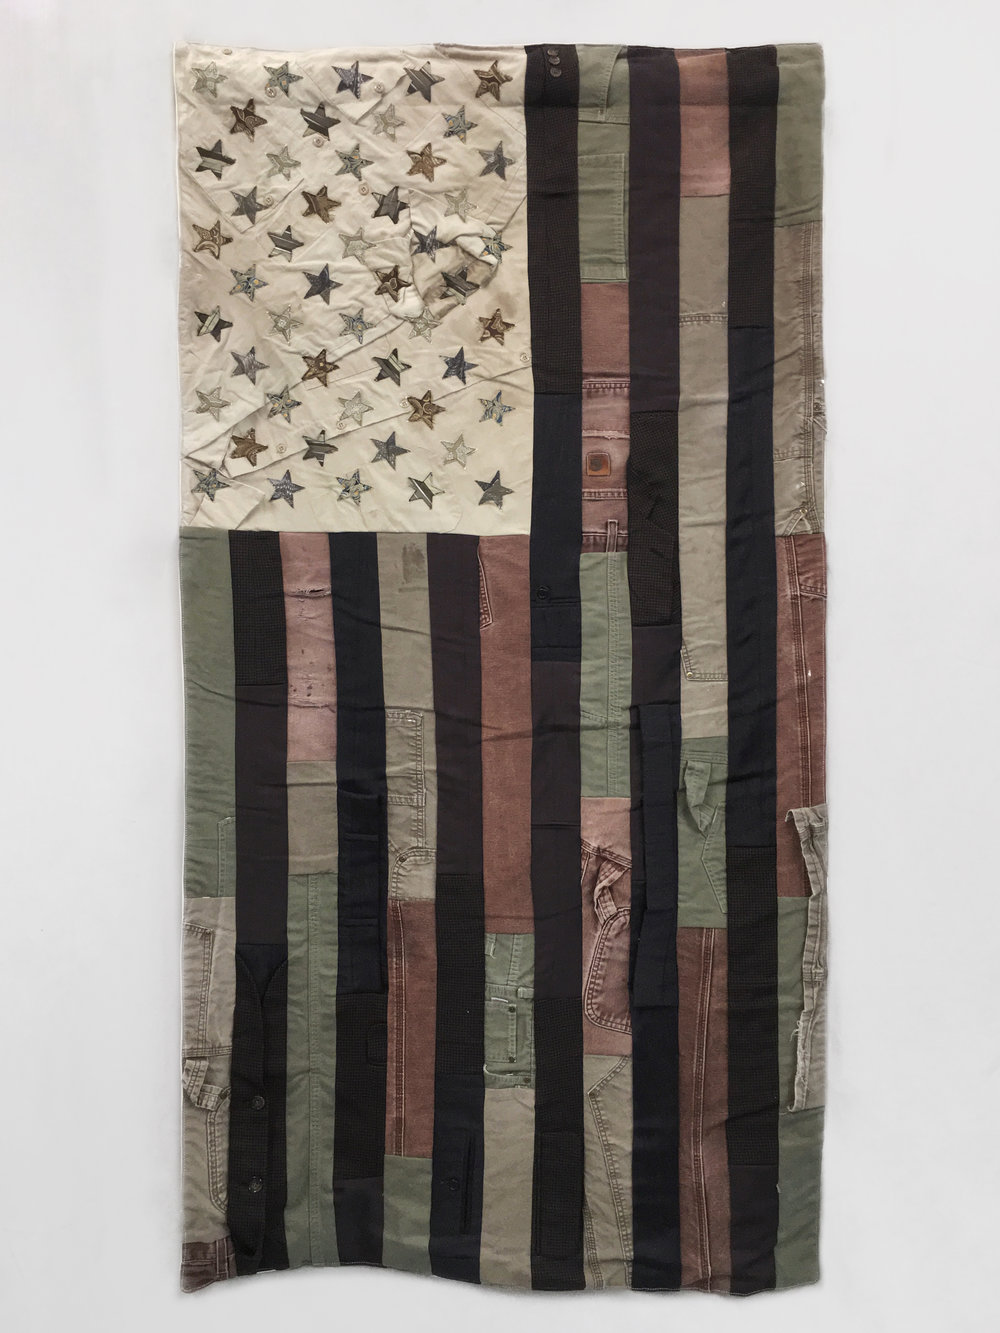 Flag #6   68 X 36 • Carpenter's Pants, Suits, Collared Shirts, Neckties  $4,000